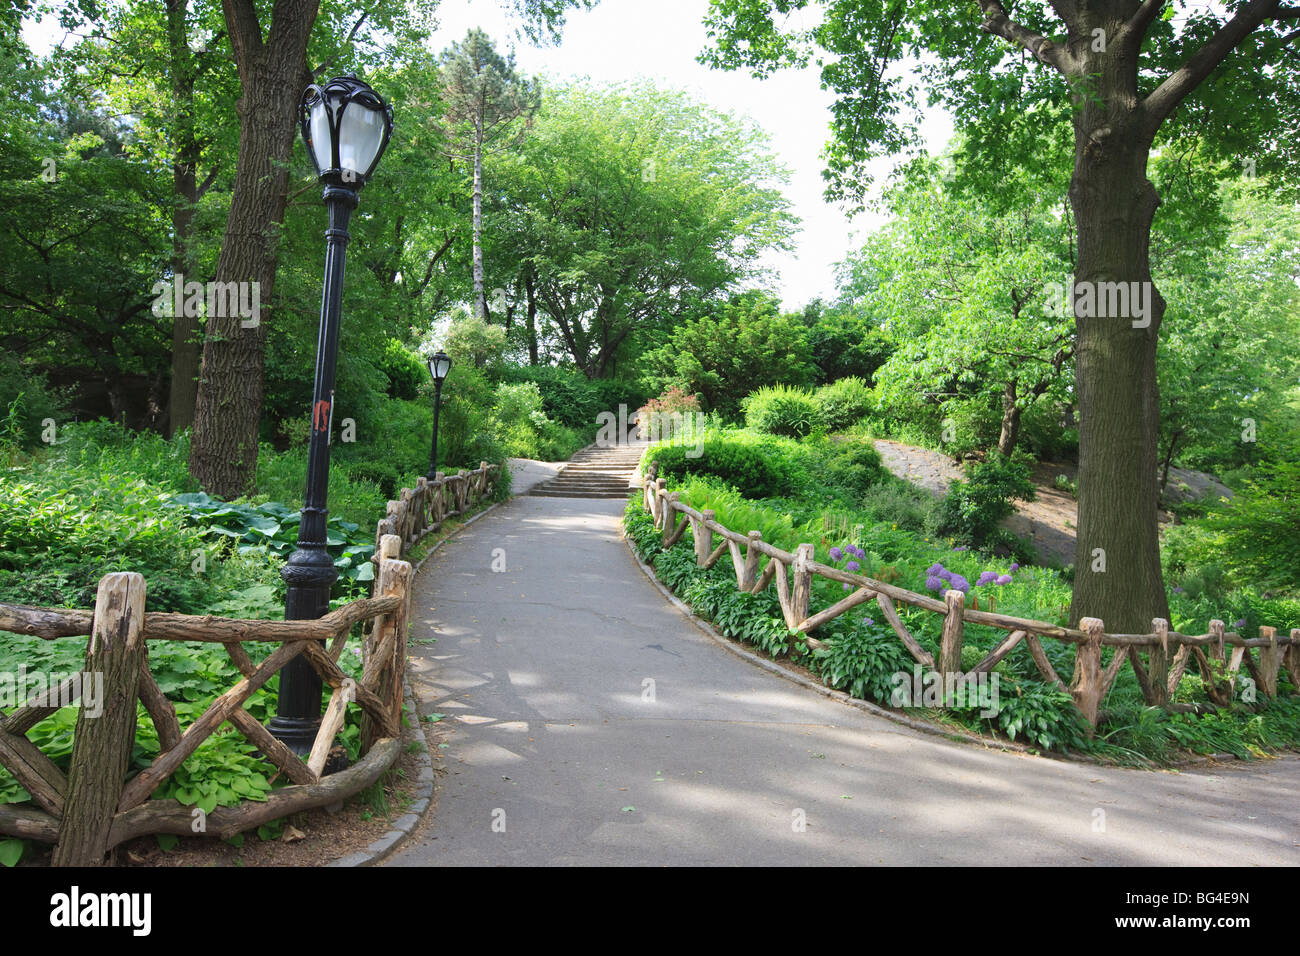 The Ramble, Central Park, Manhattan, New York City, New York, United States of America, North America - Stock Image